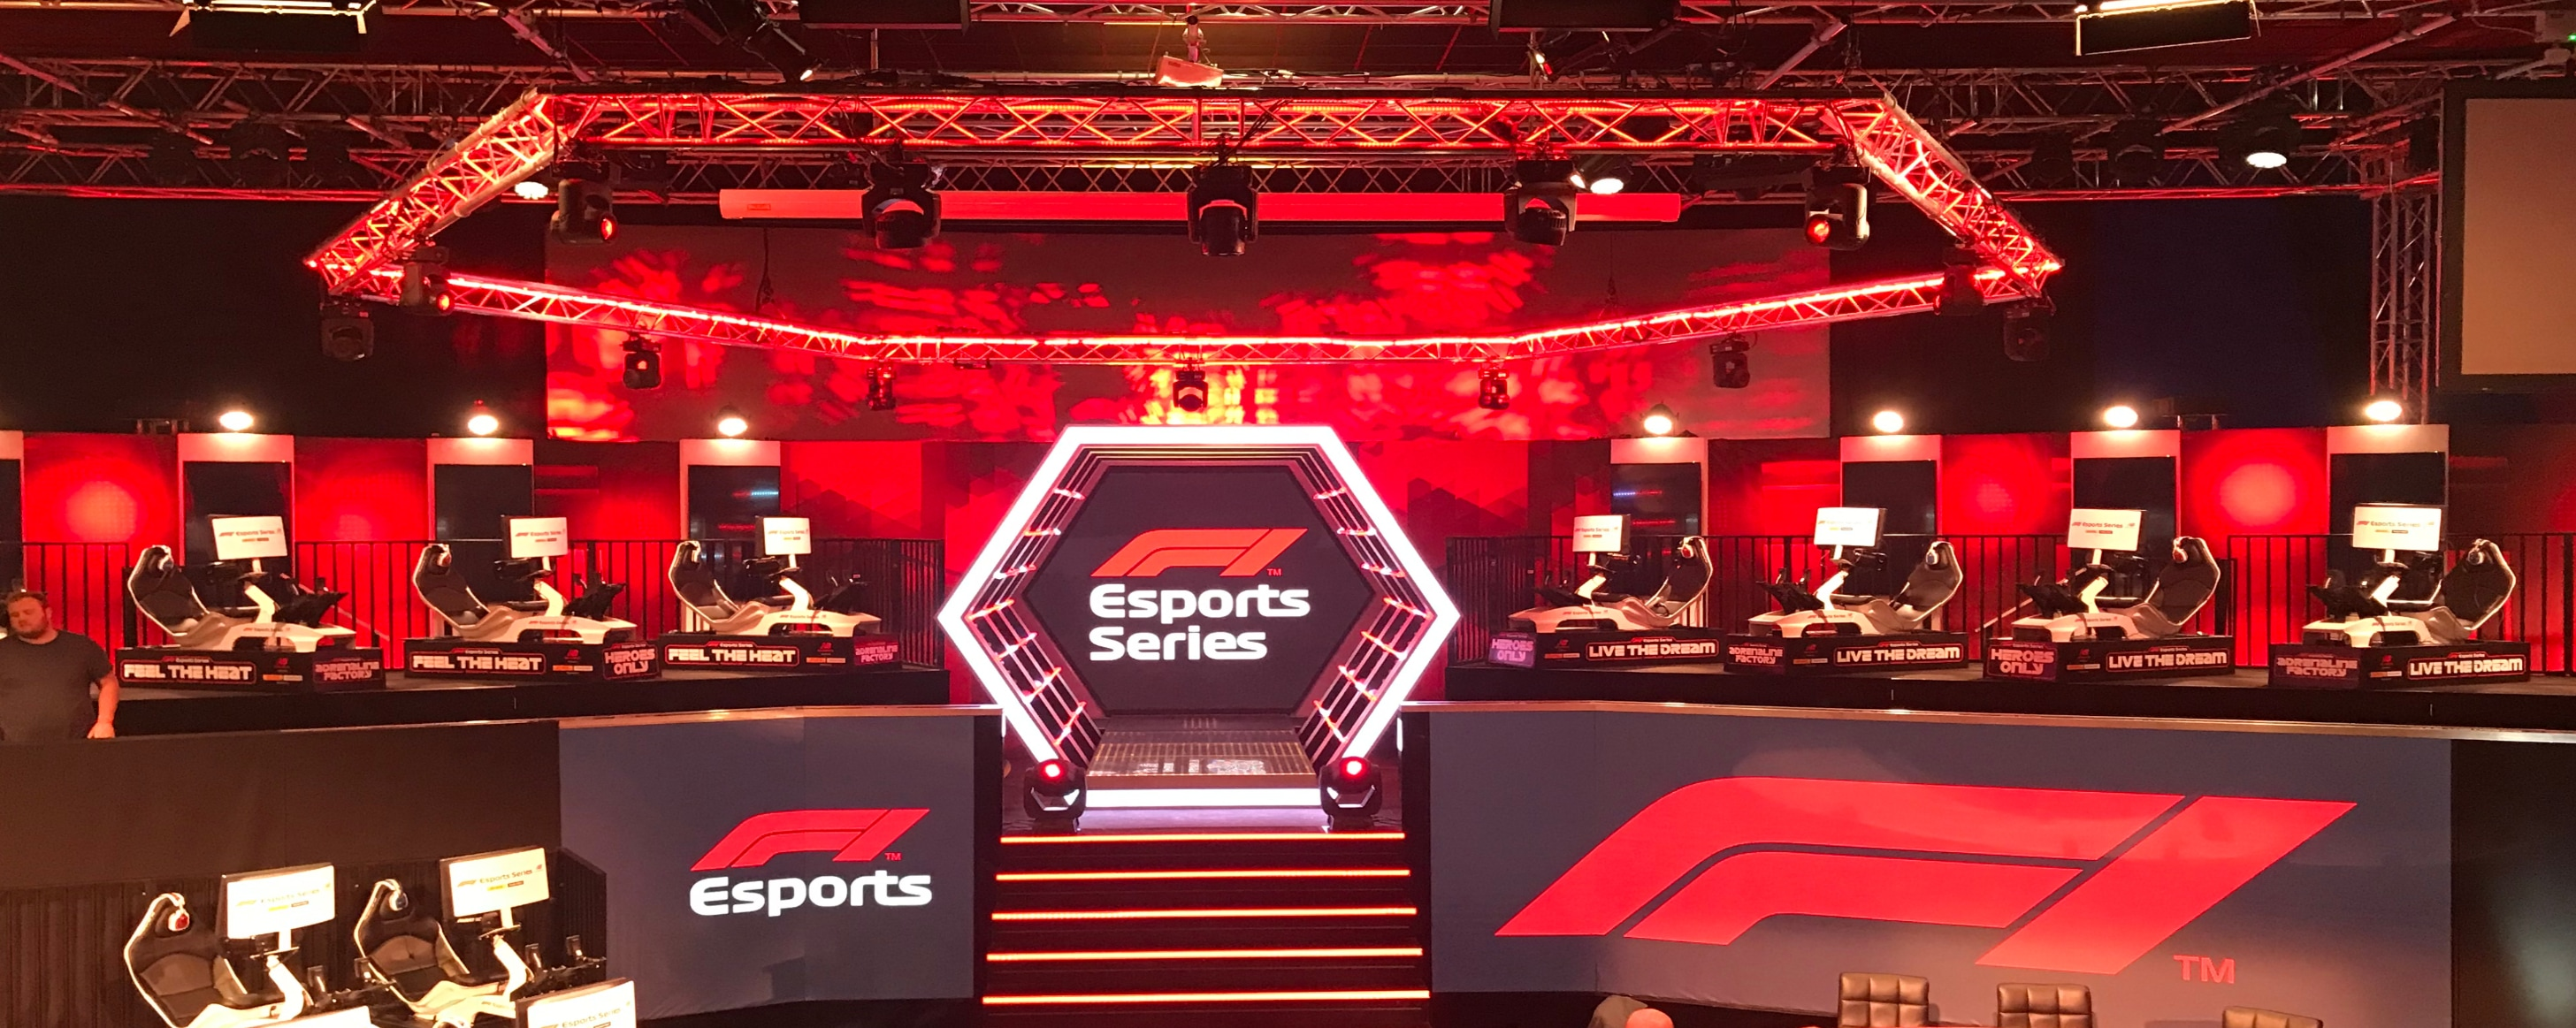 F1 New Balance Esports Series 2018: Live Event One